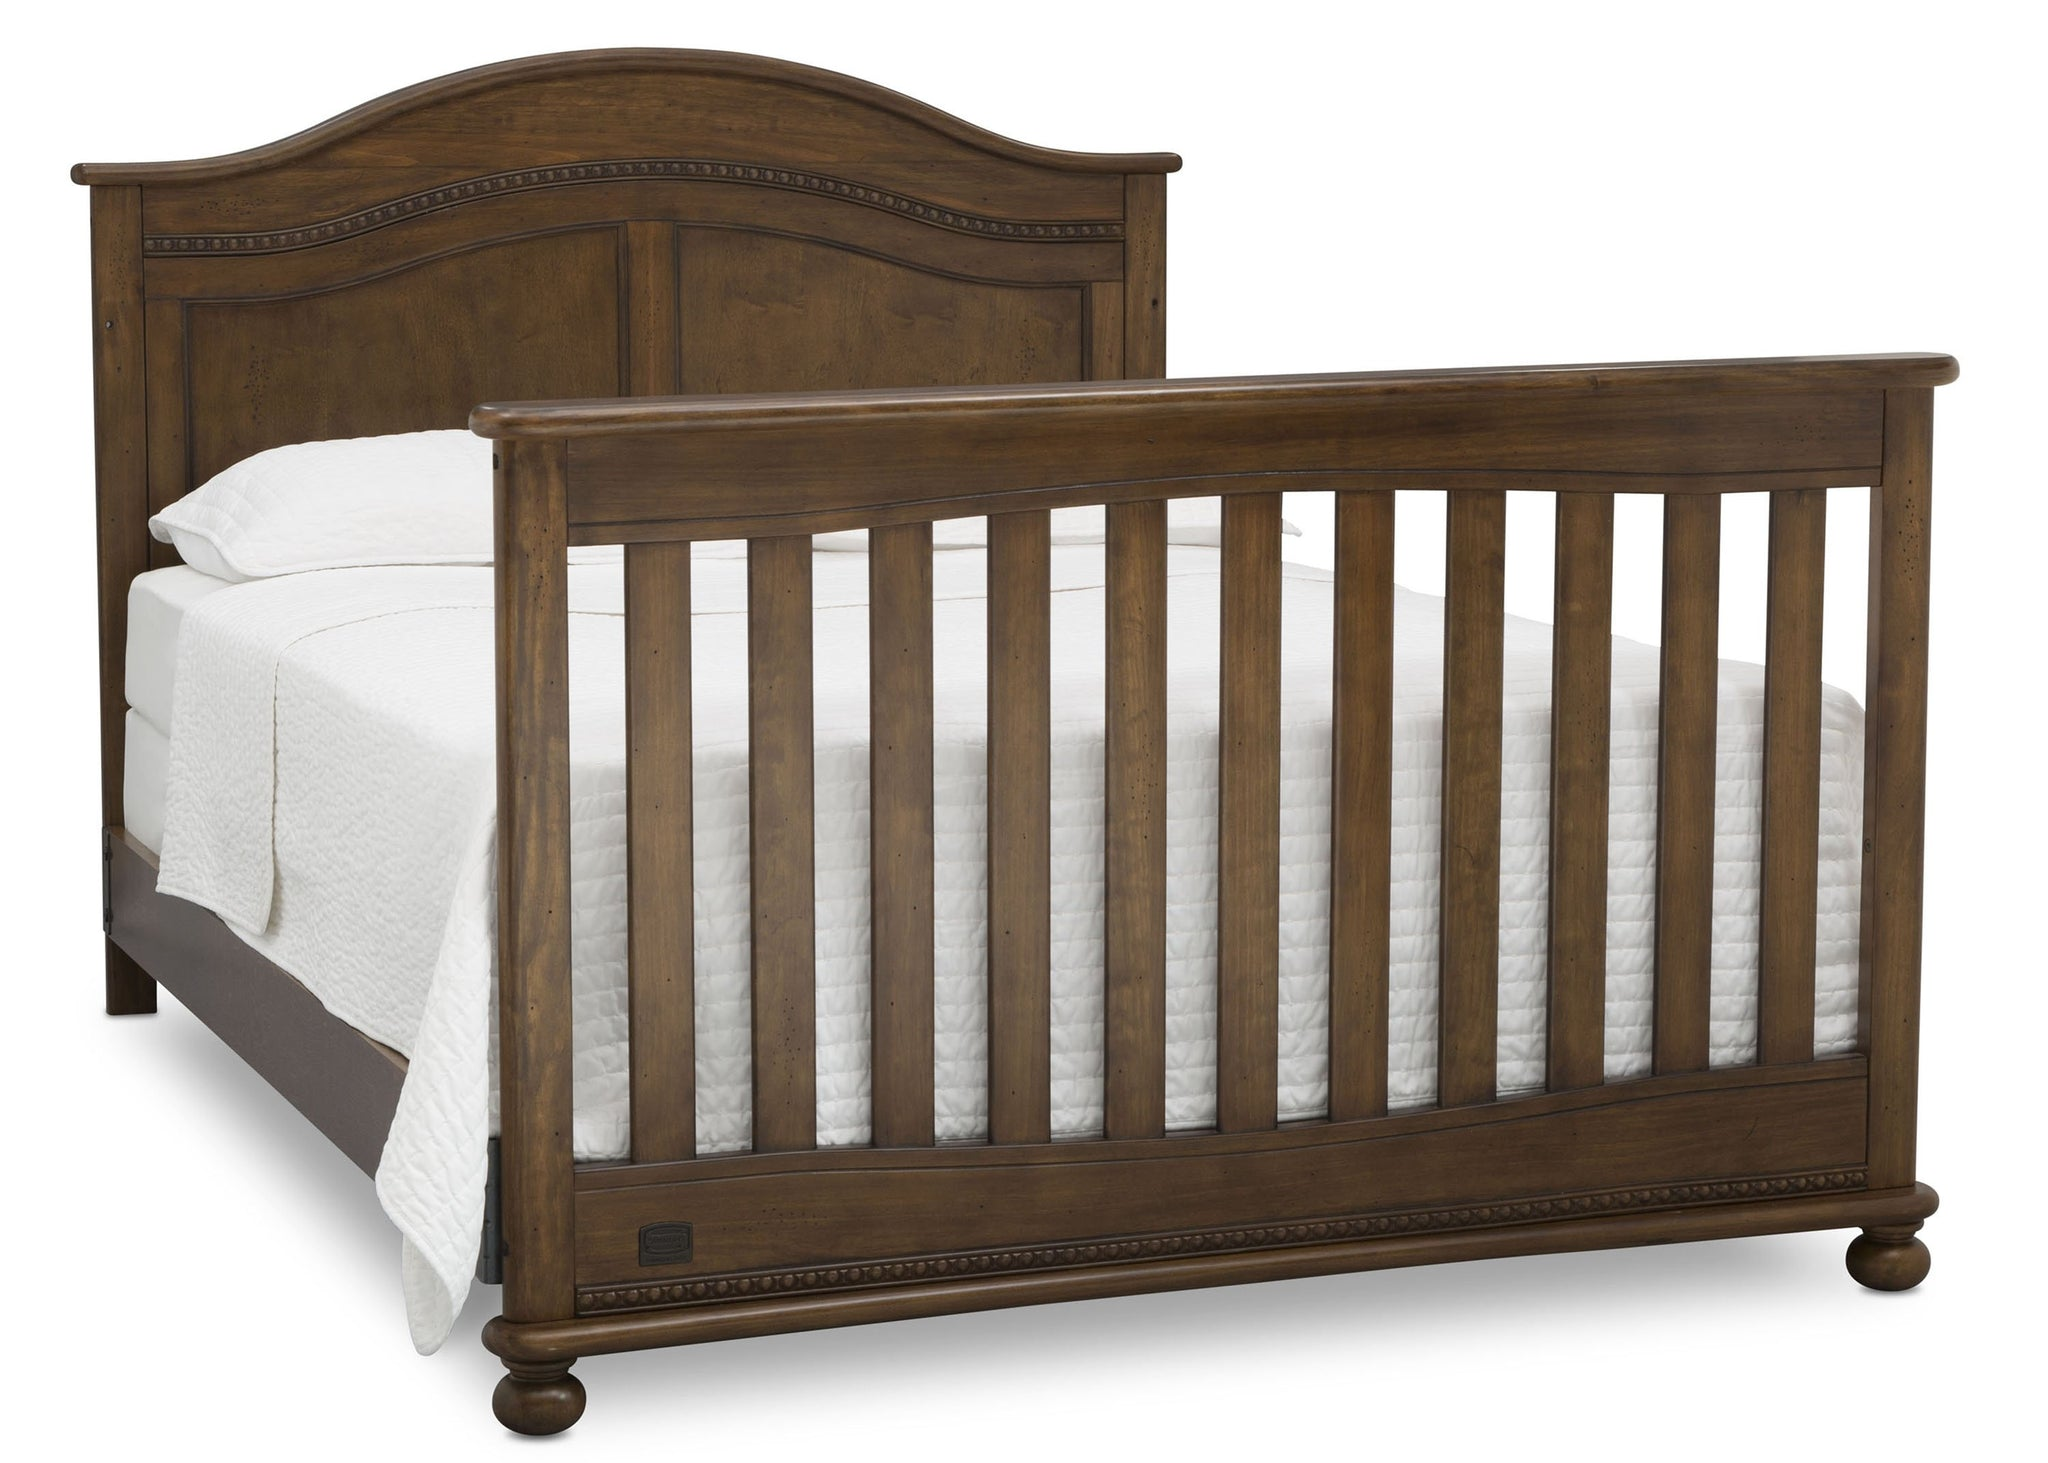 Simmons Kids Antique Chestnut (2100) Bedford 4-in-1 Convertible Crib (W337150), Fullbed, c6c